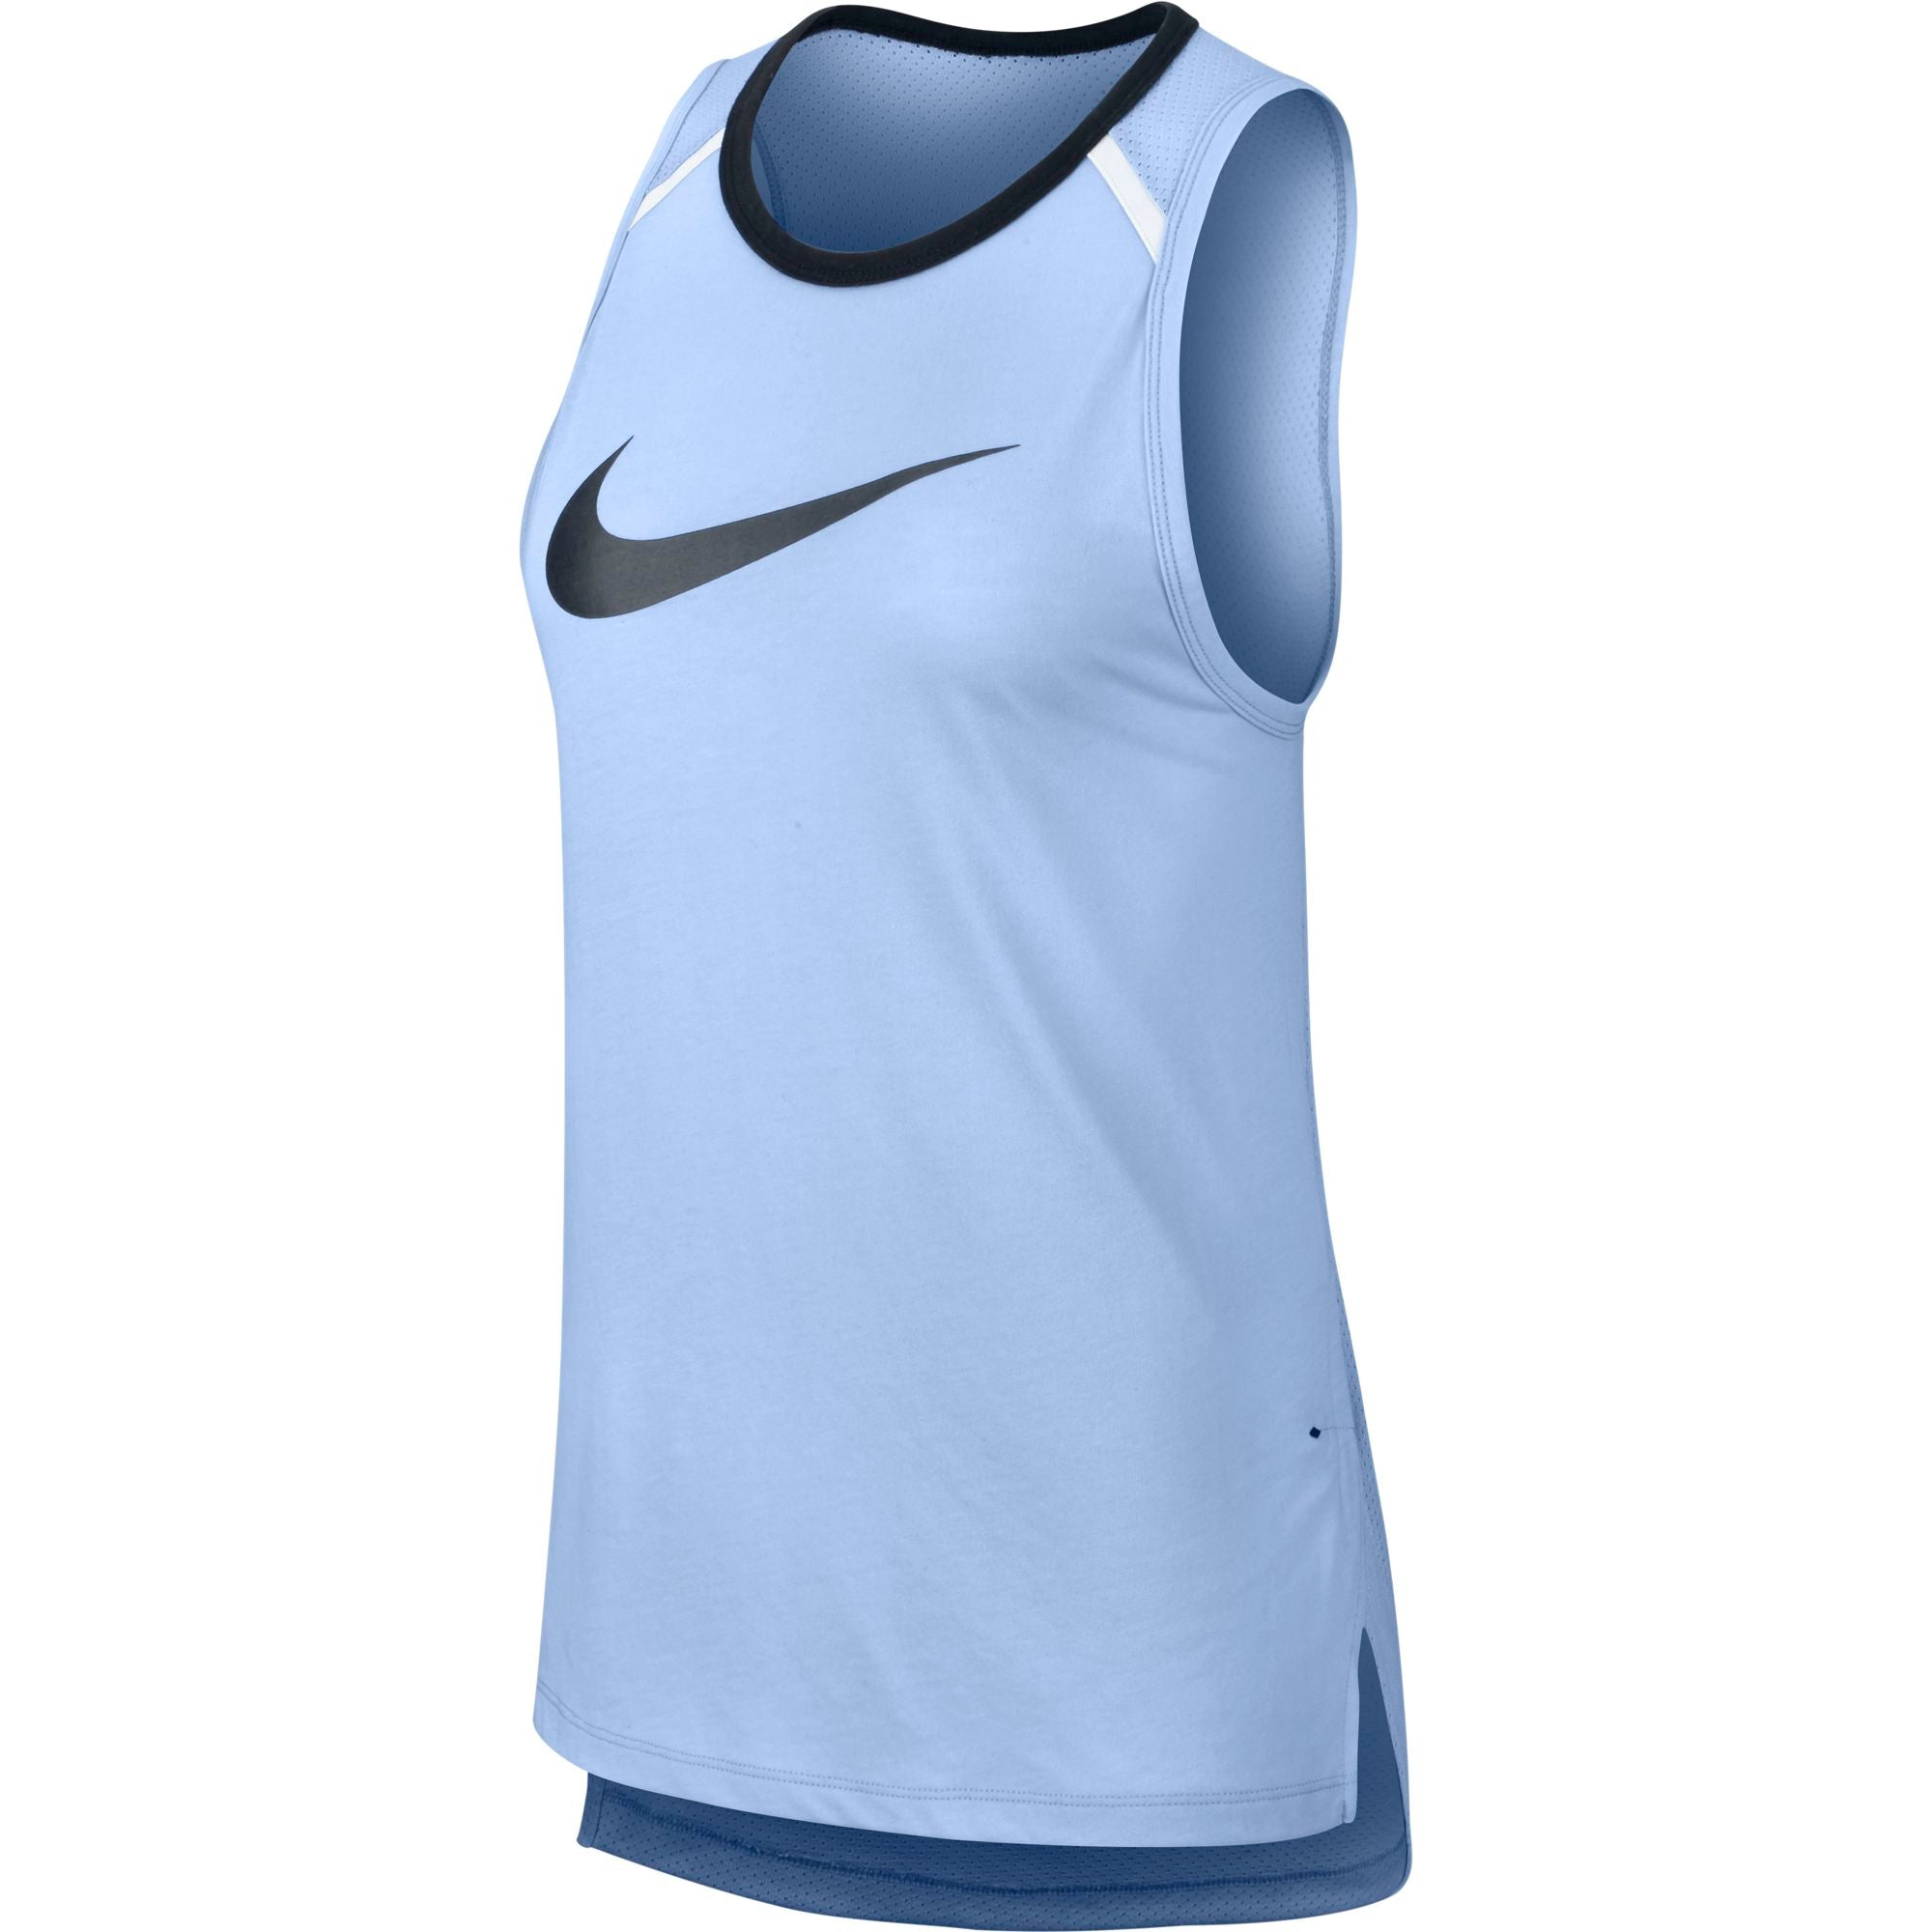 Nike Womens Basketball Breathe Elite Top - NK-890513-415